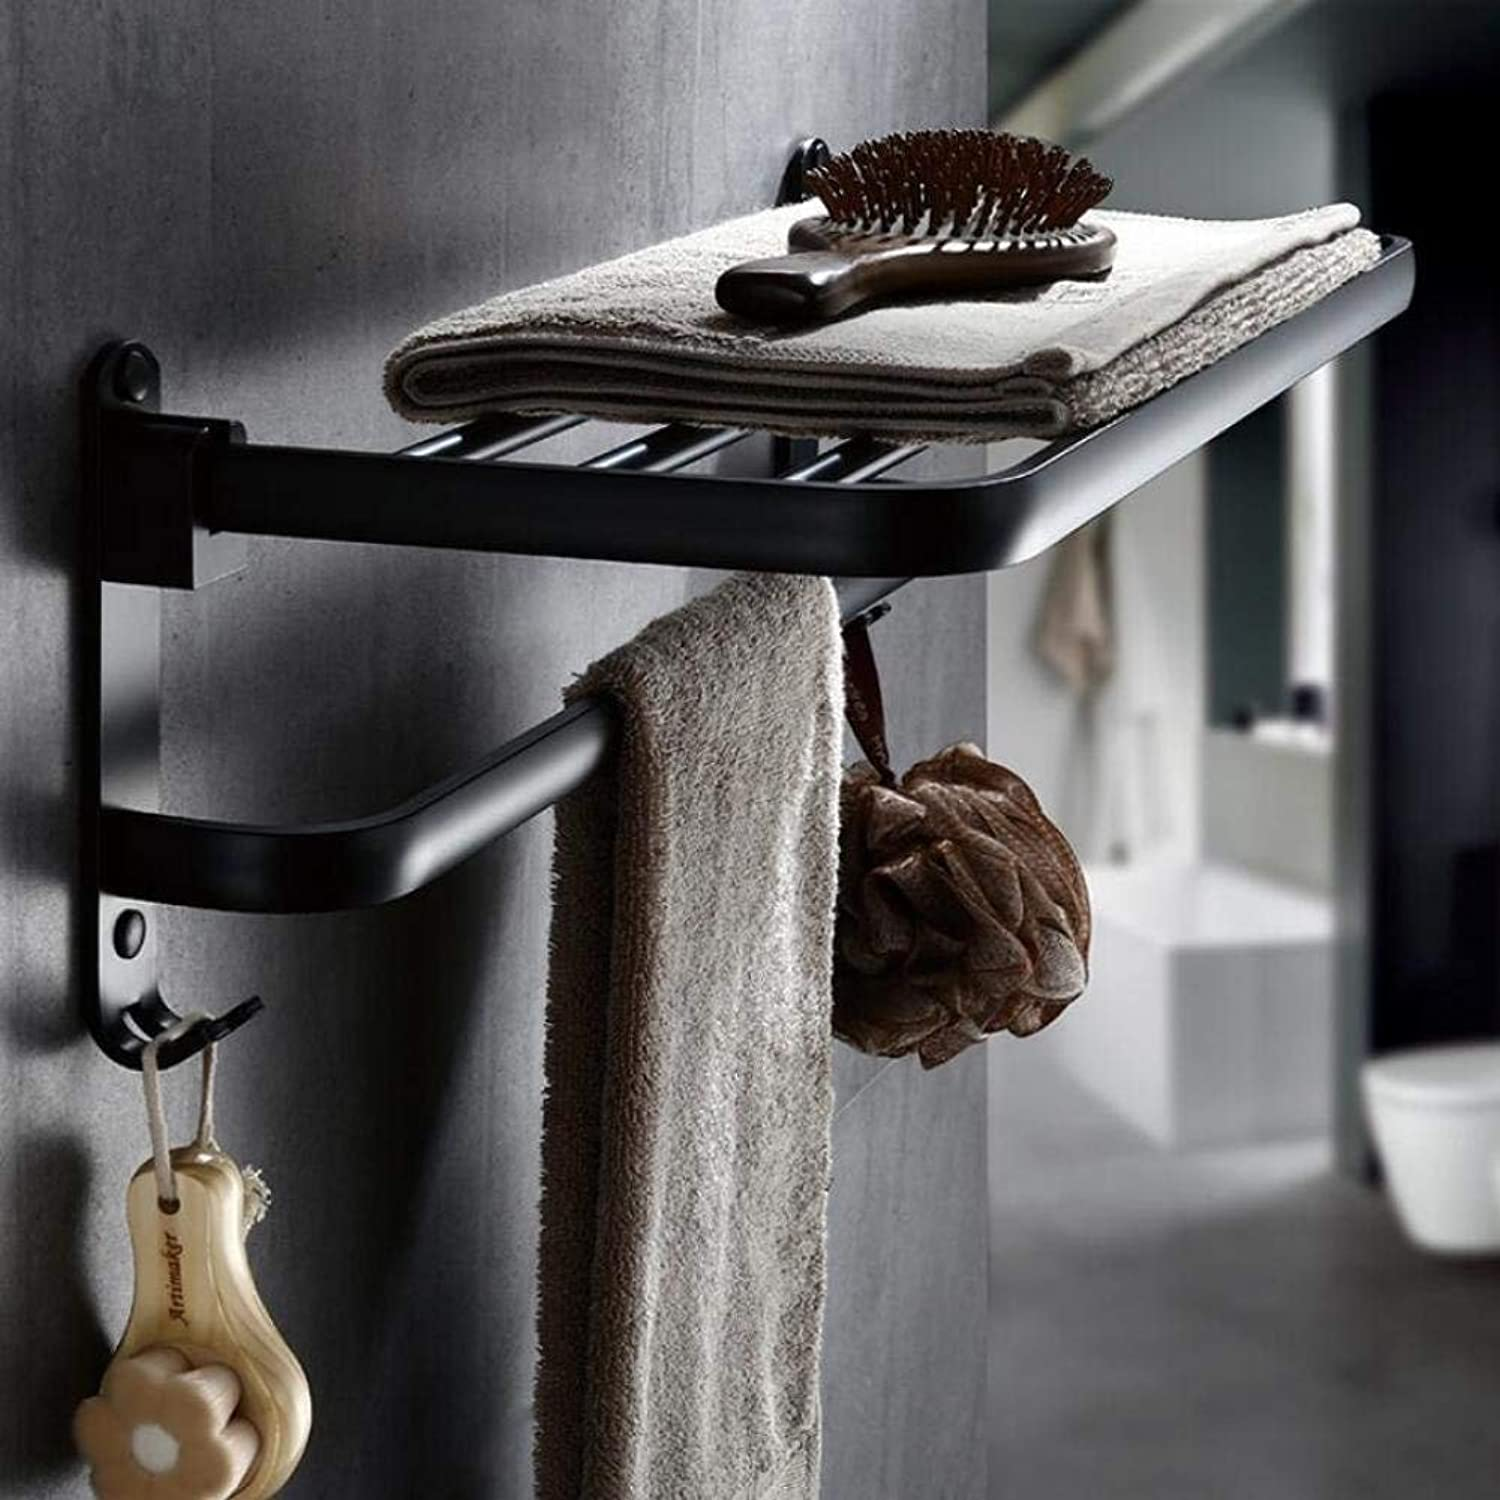 Dry-Towels Shelves in Aluminum The Wall Space, Bathroom Shelves - Double Black Layer